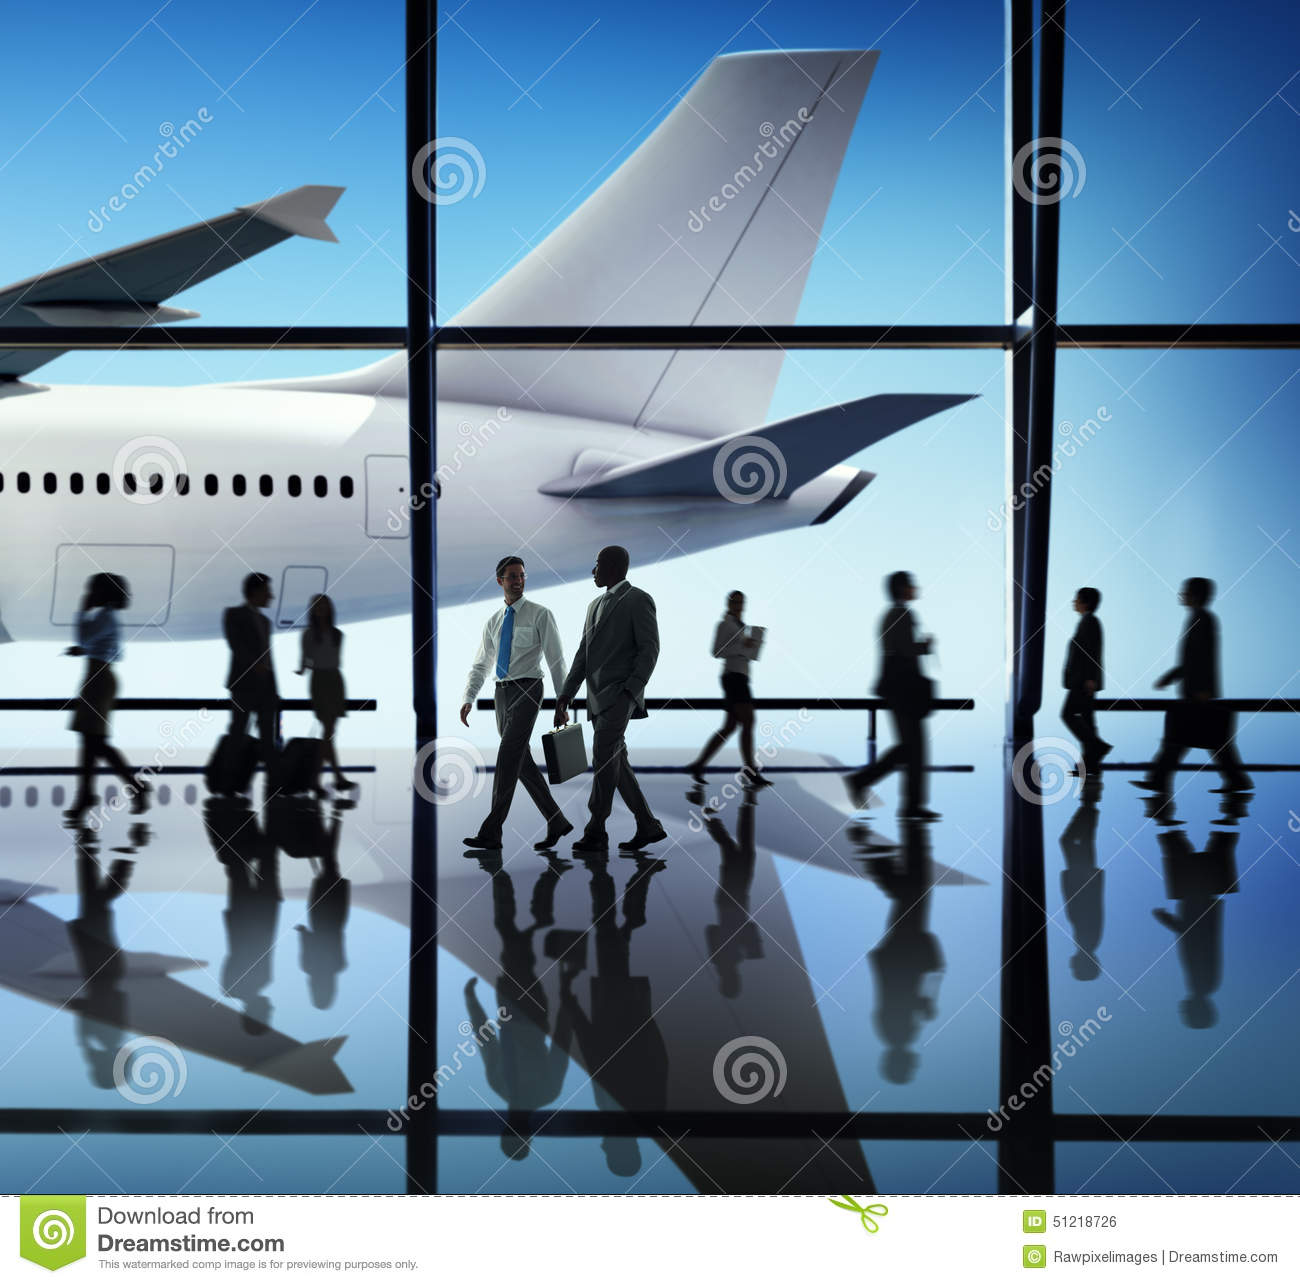 Aviation aerospace or airport industry essay